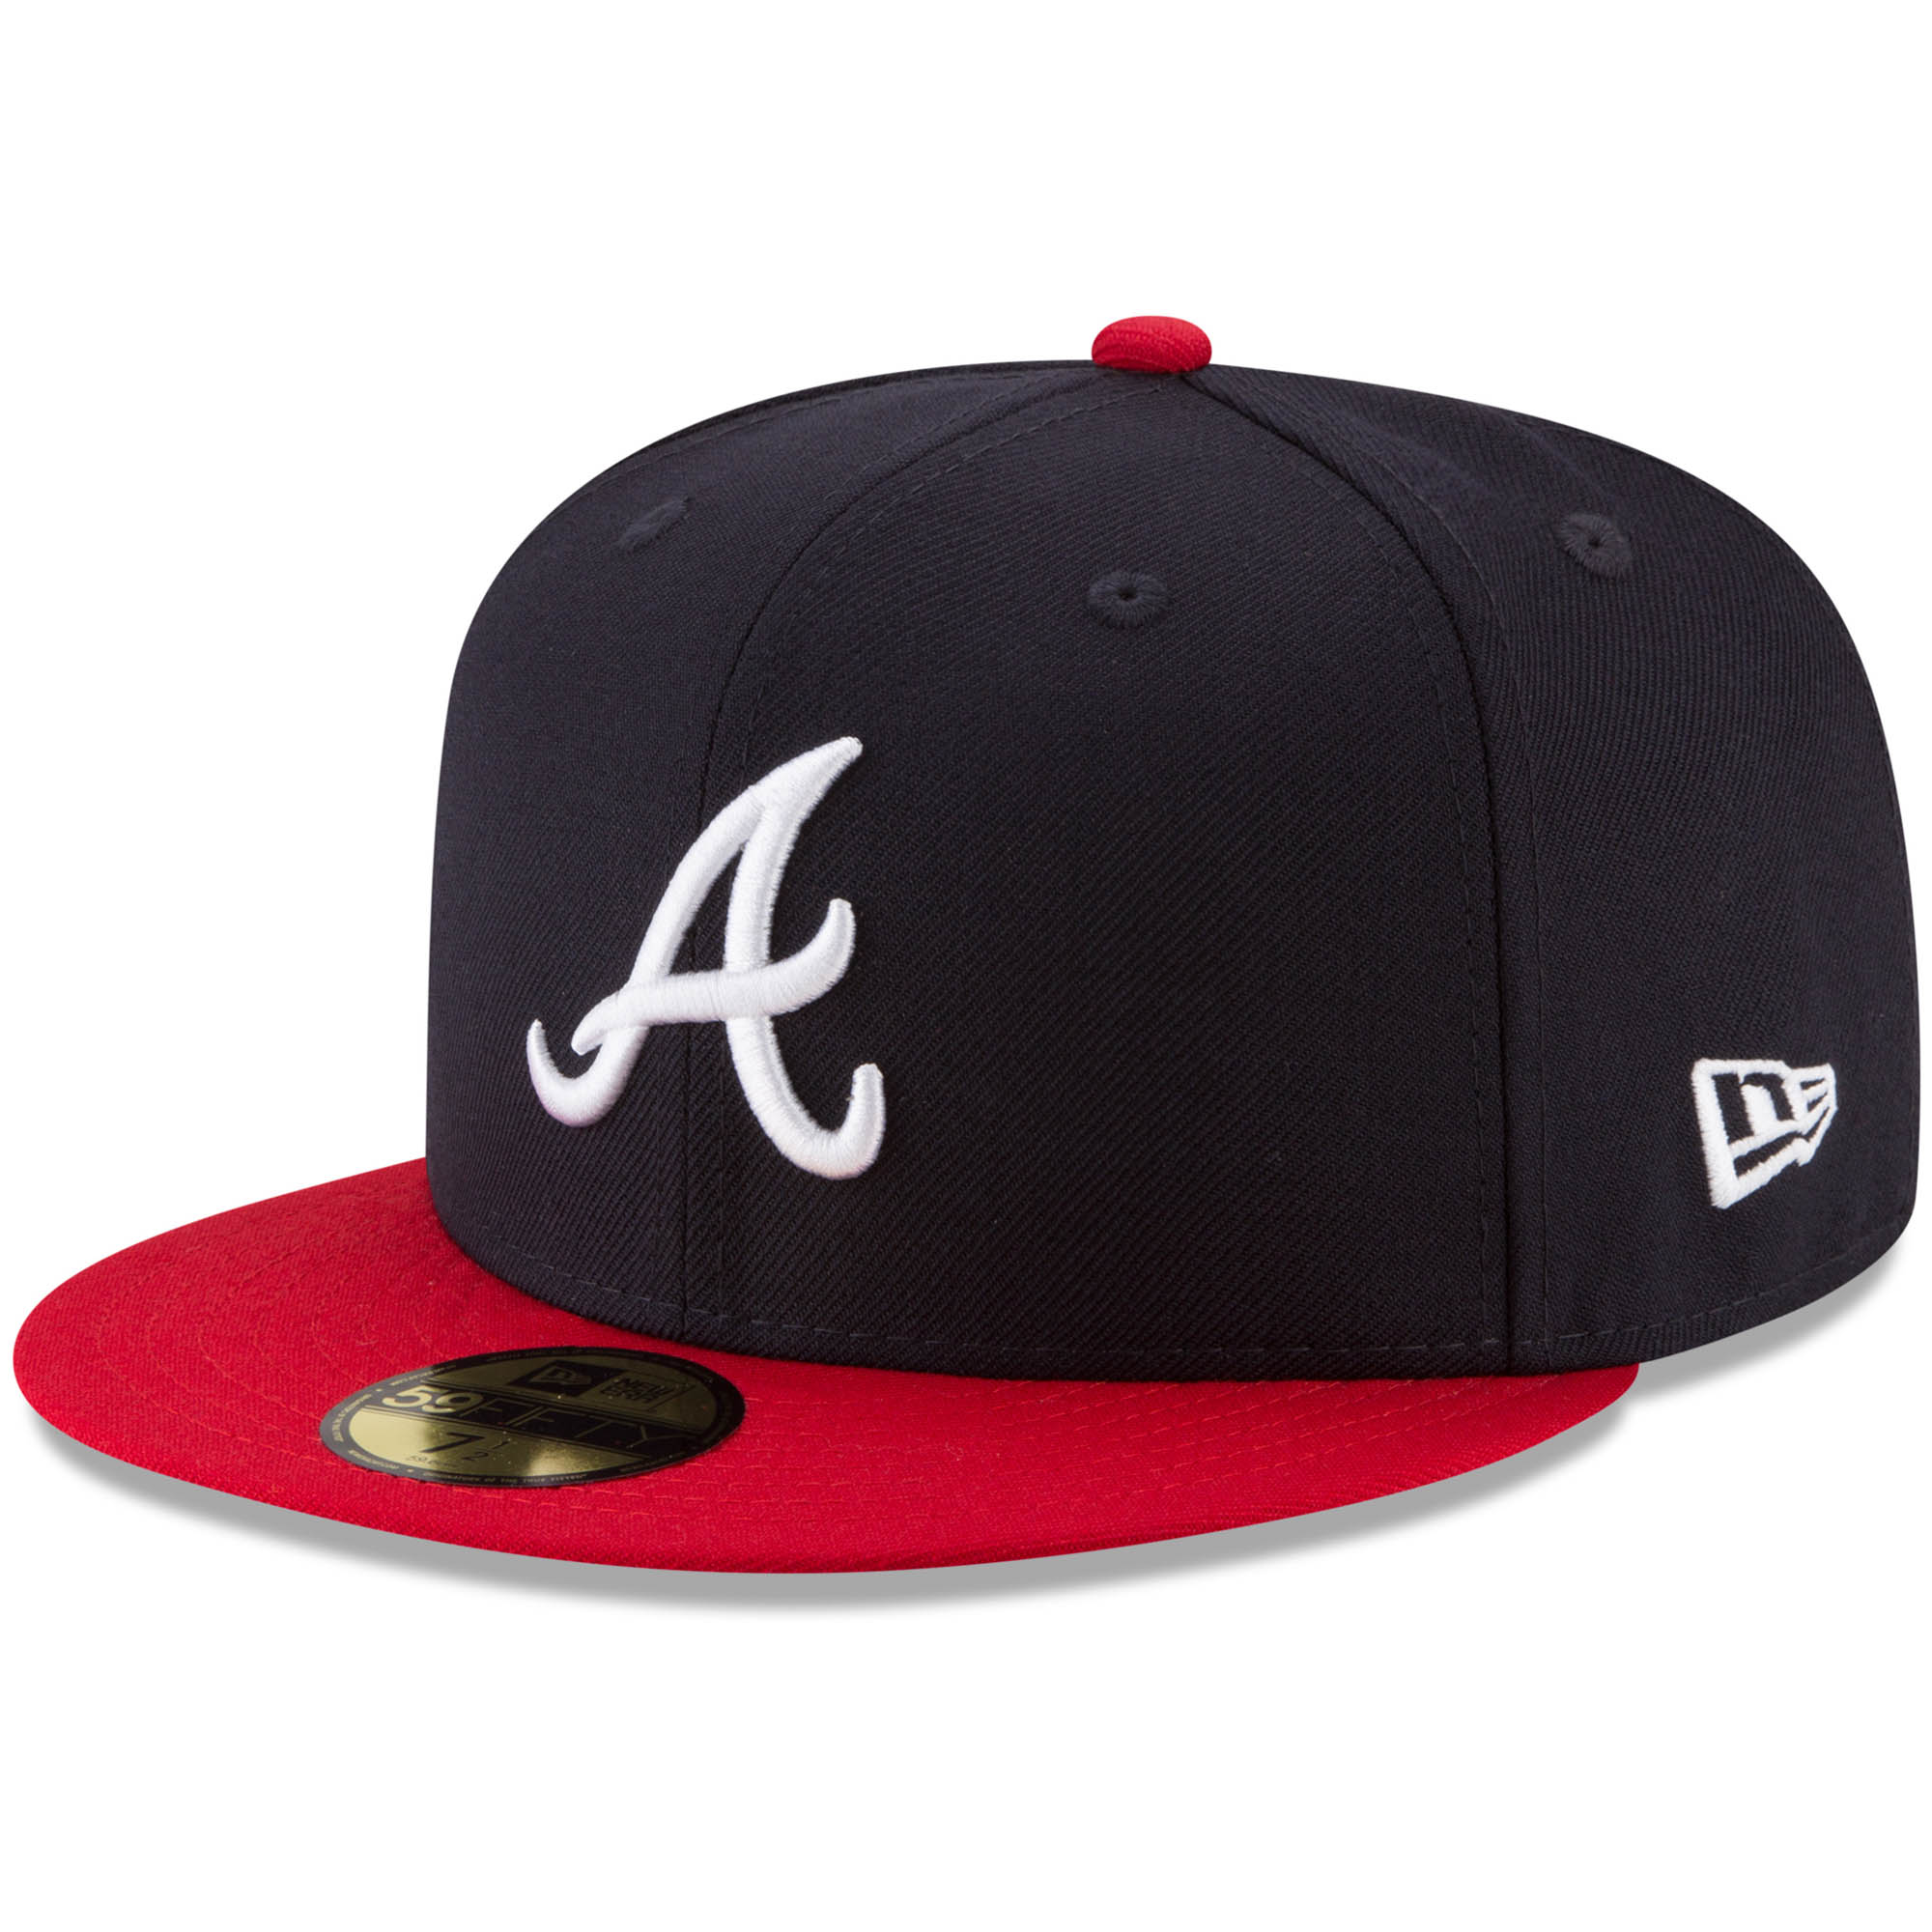 Atlanta Braves New Era Cooperstown Collection 1995 World Series Side Patch 59FIFTY Fitted Hat - Navy/Red